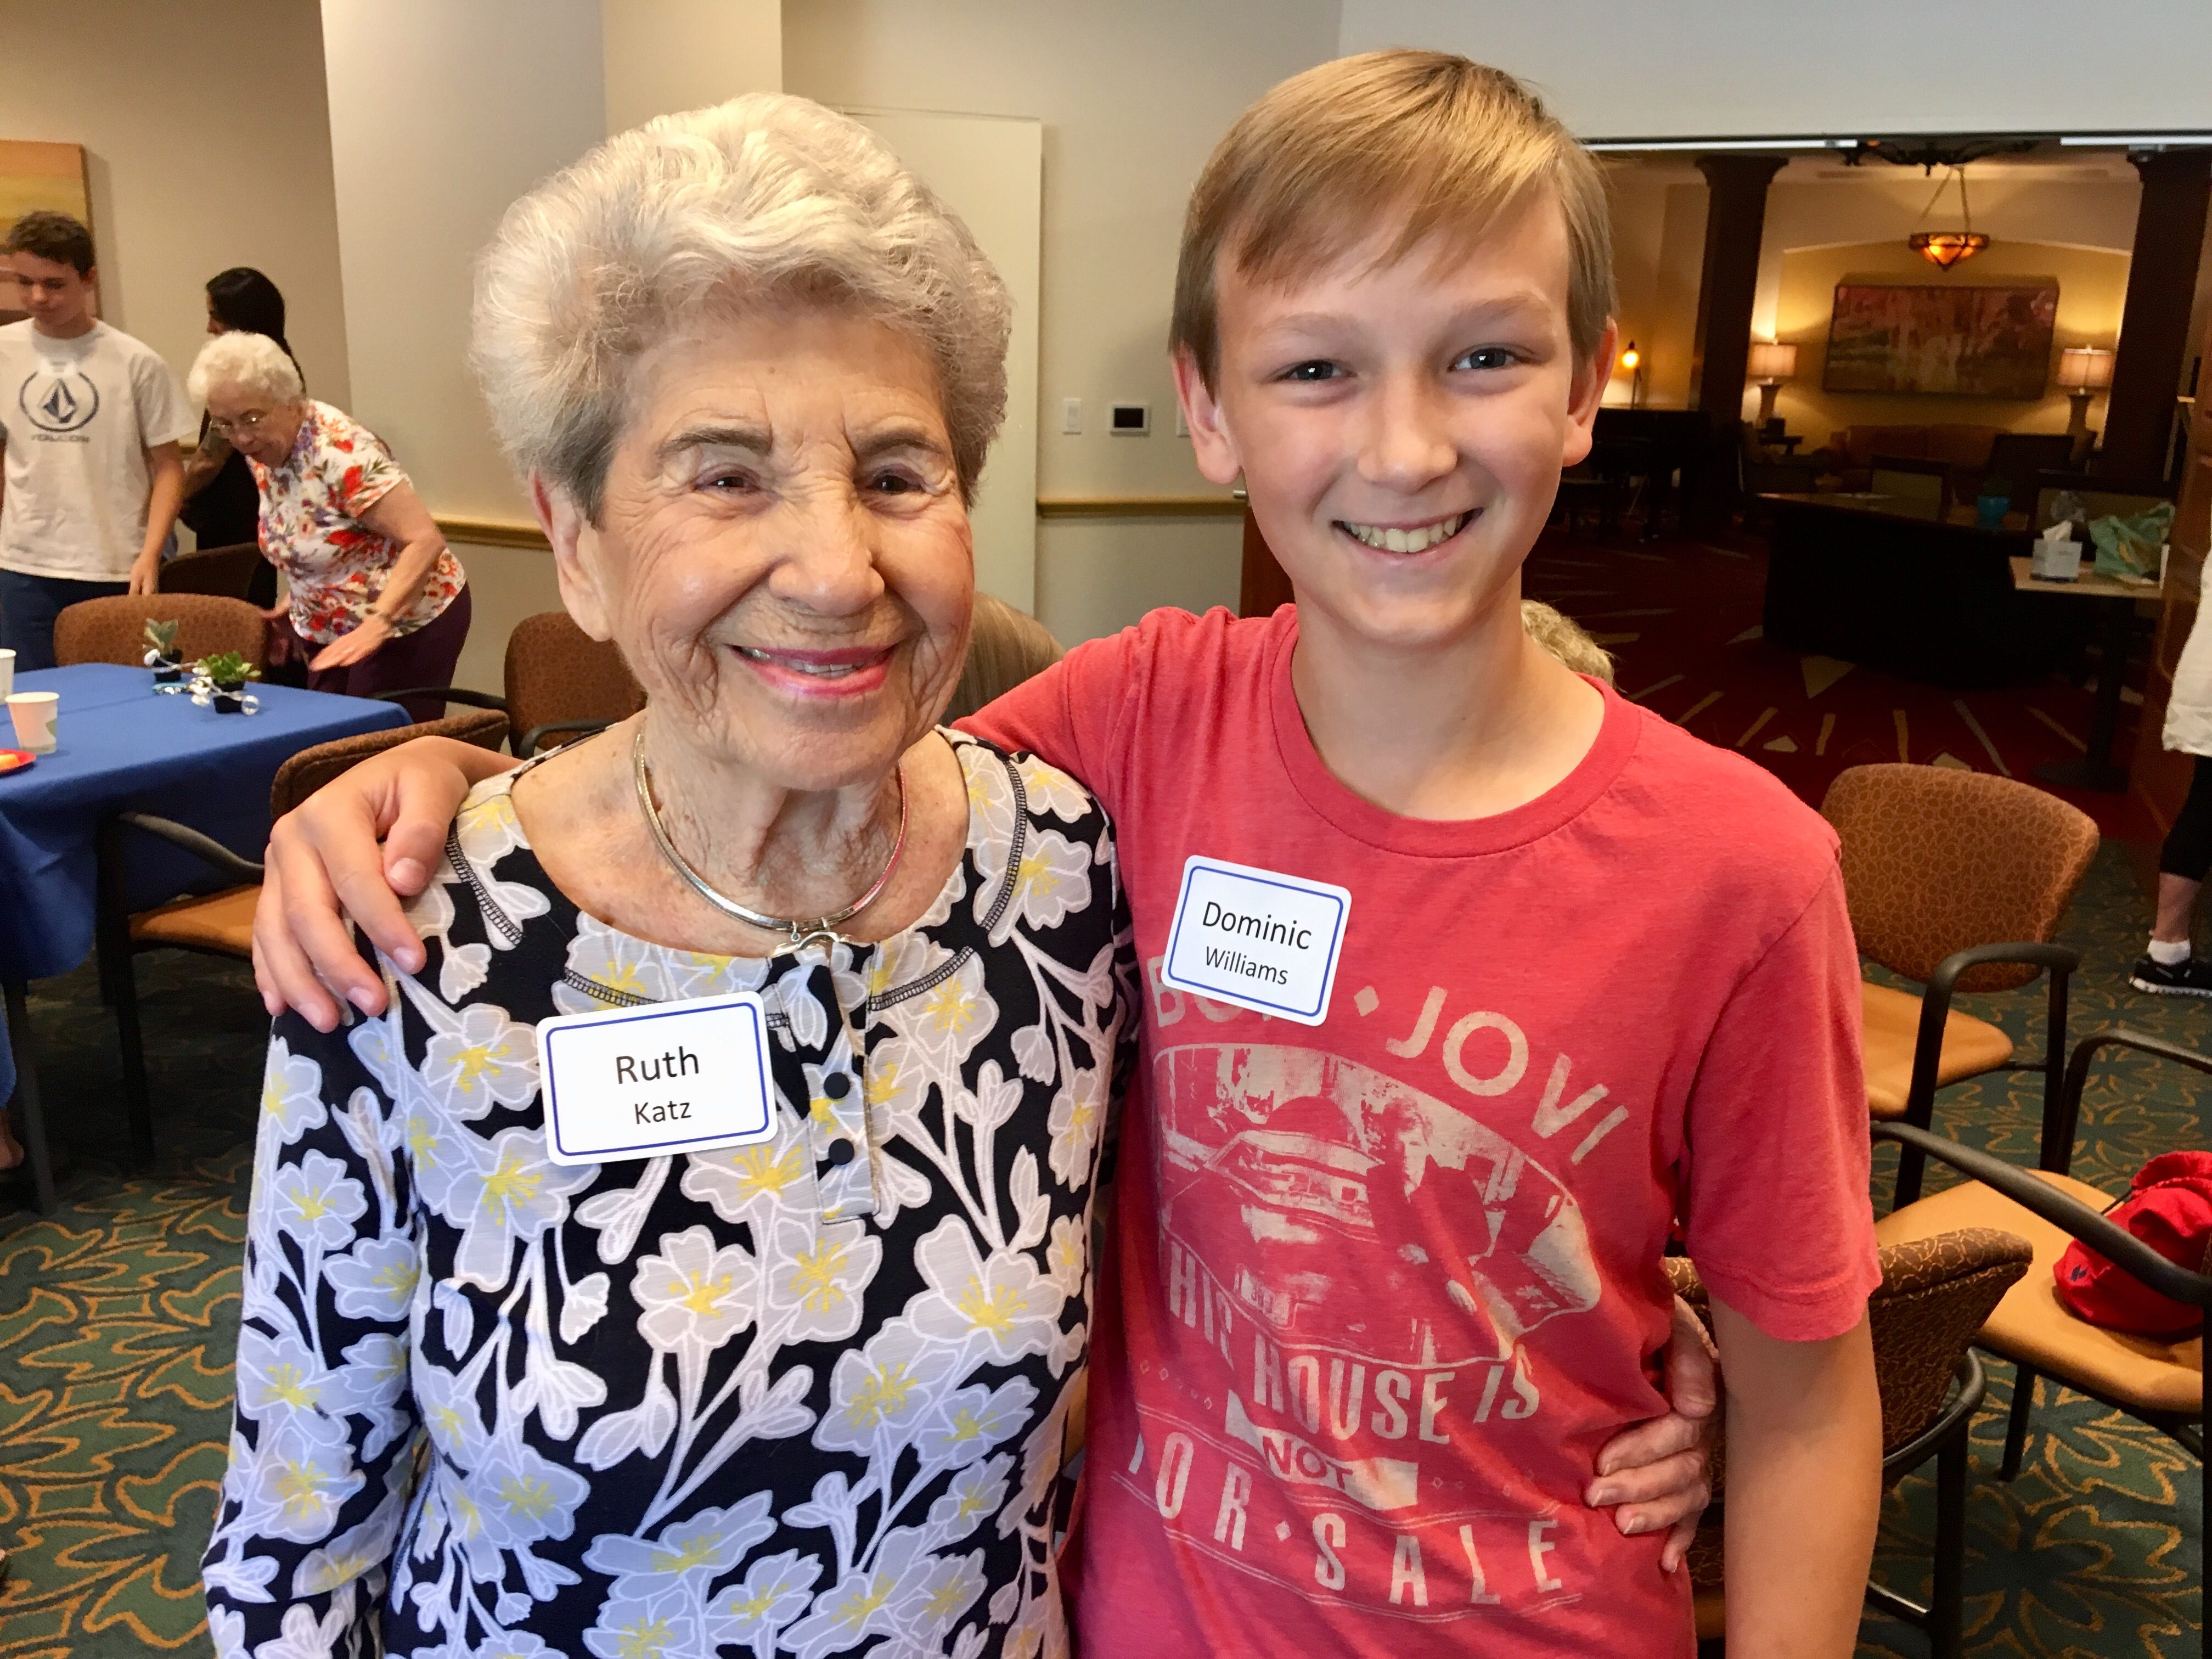 Ruth Katz with her pen pal Dominic Williams, 11, at Vi at Grayhawk, a senior living community in Scottsdale.